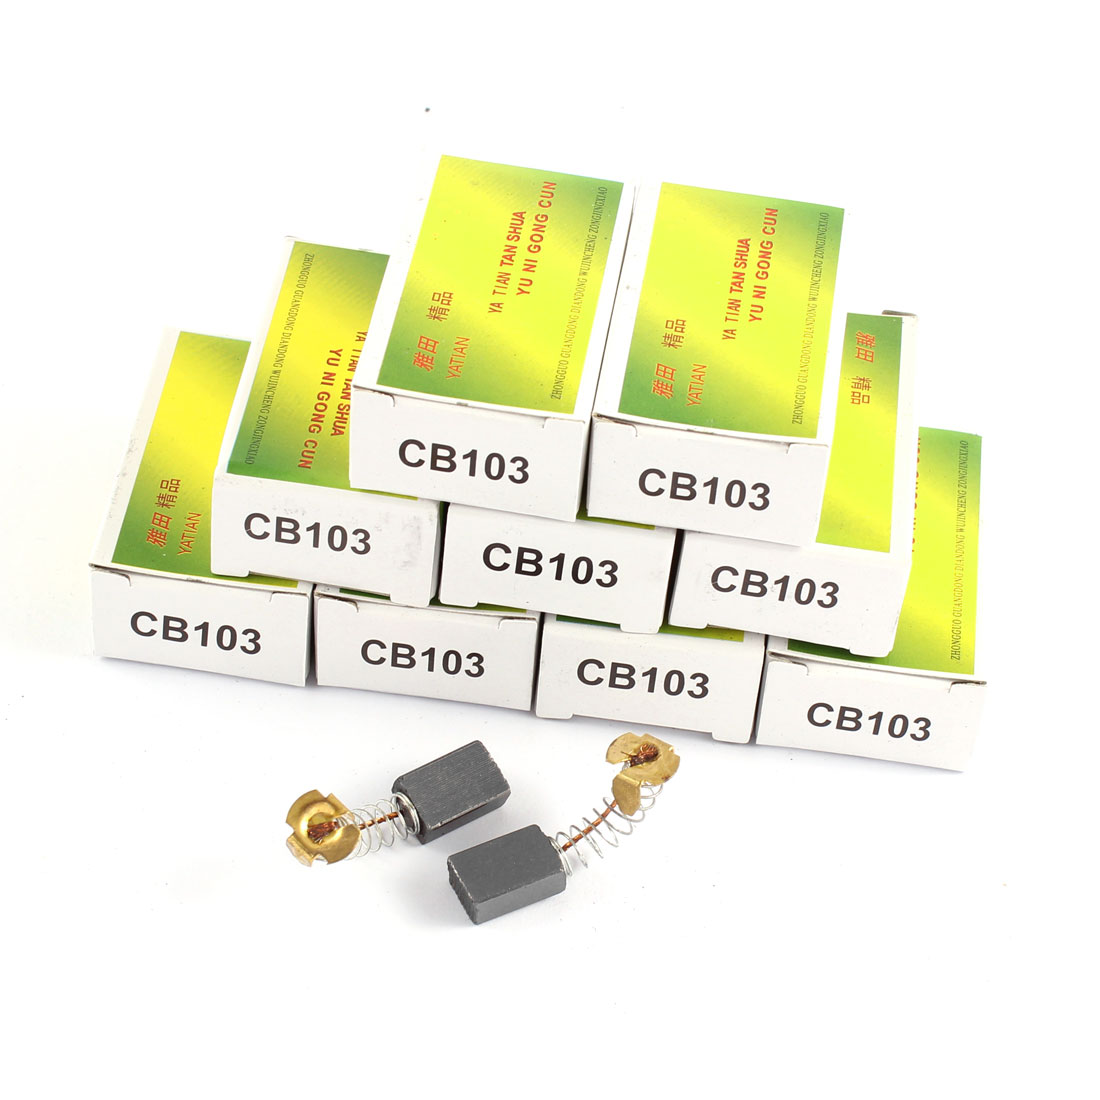 20 Pcs 15 x 10 x 6mm Electric Motor Carbon Brushes Power Tool